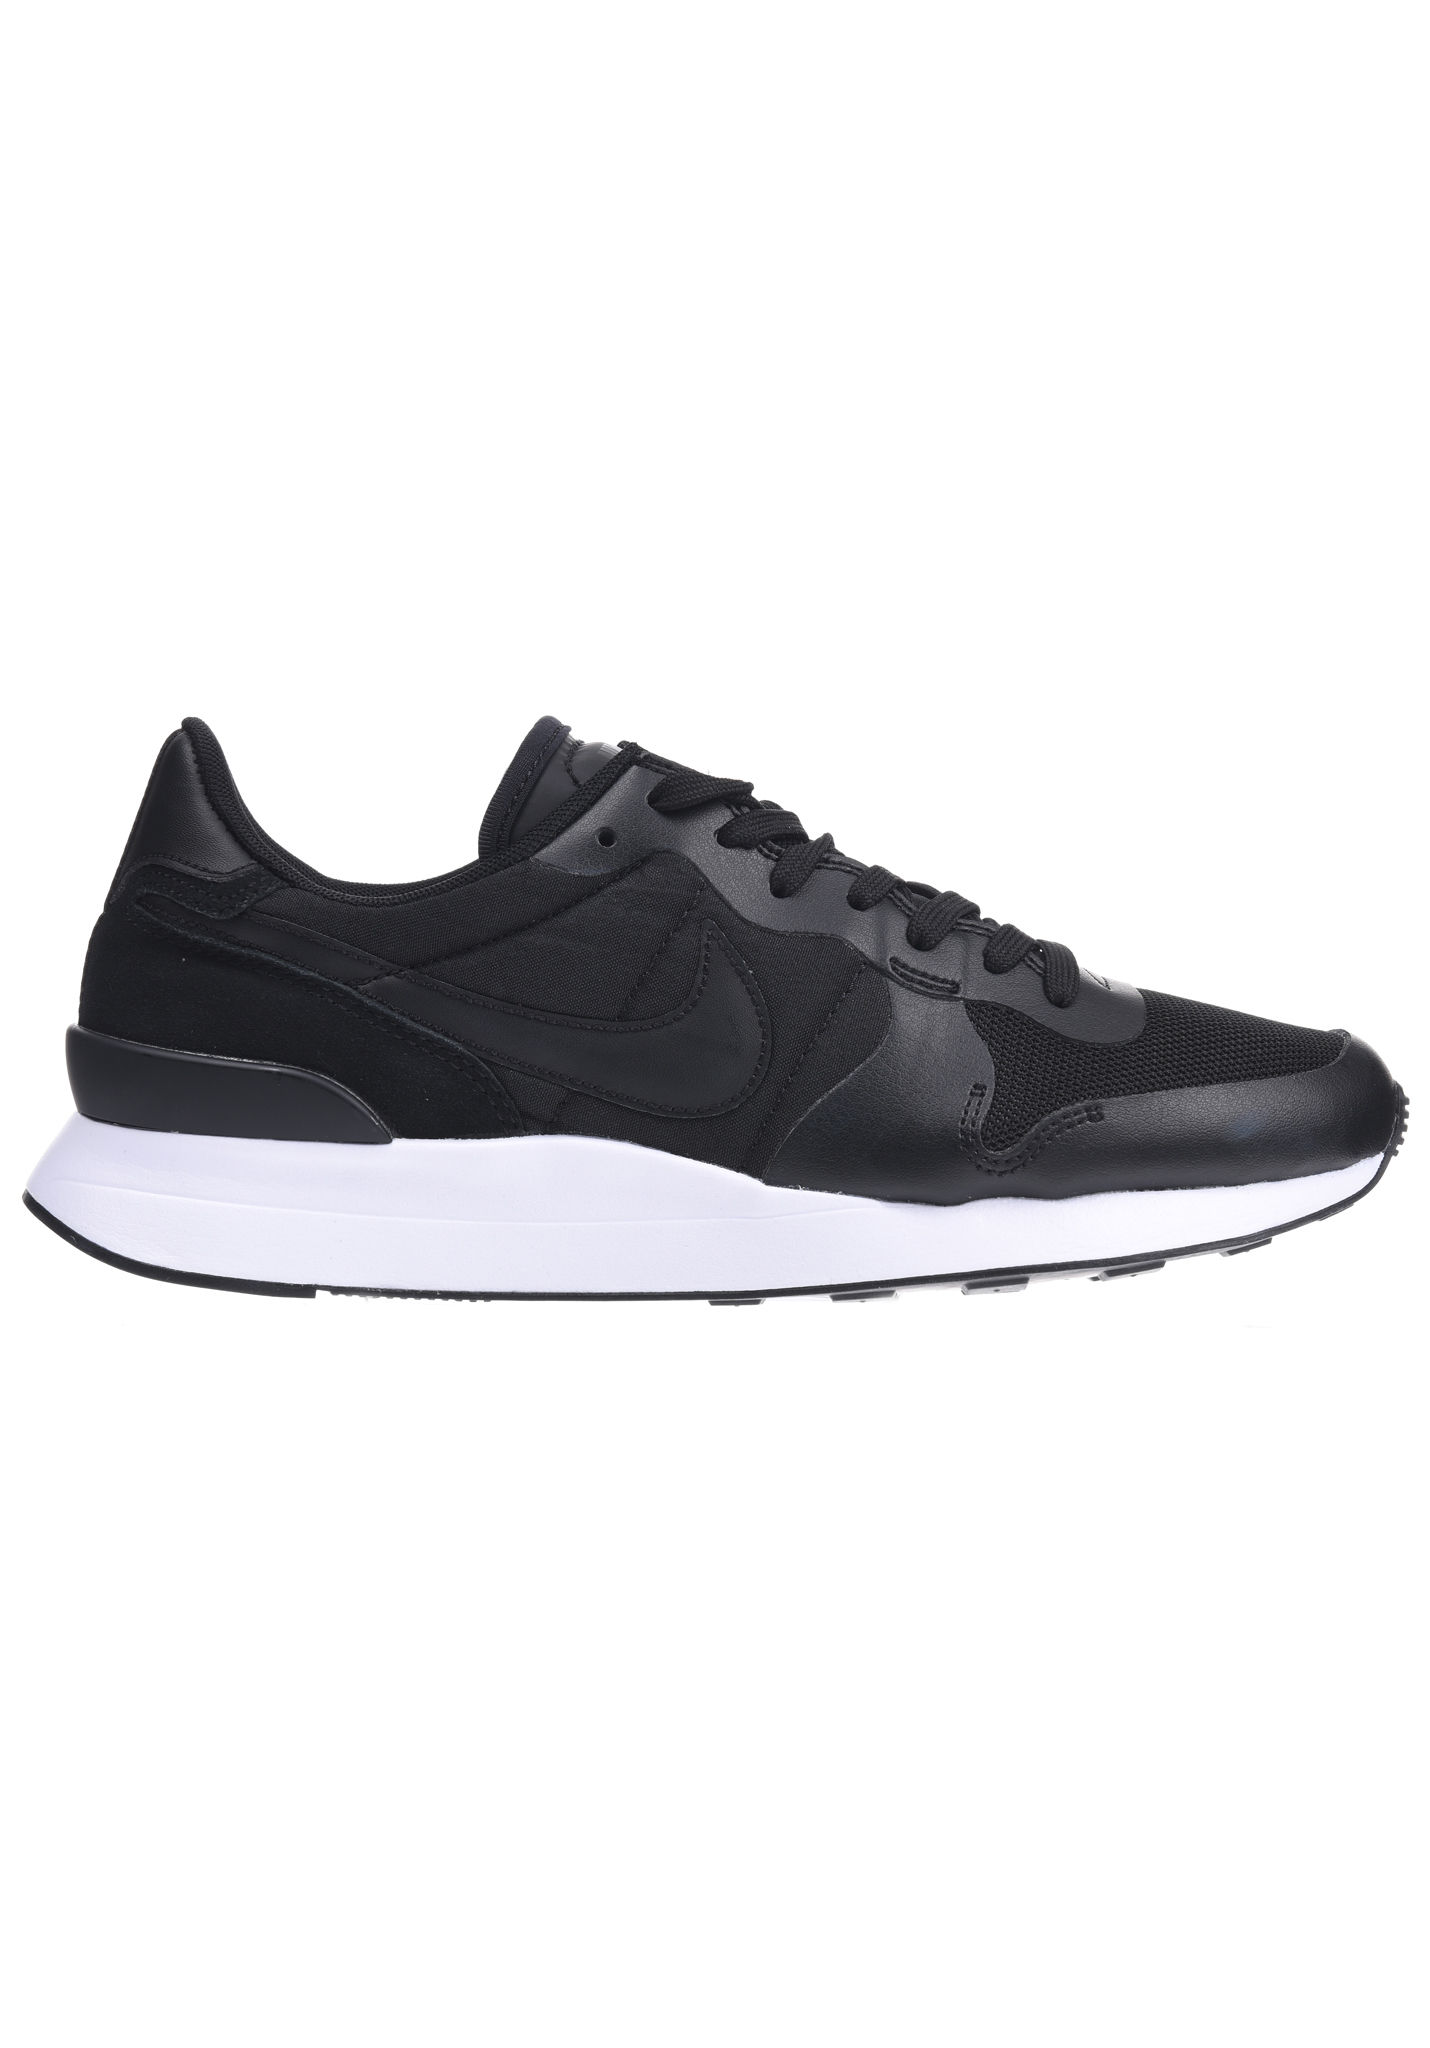 3d57b1b83d4 NIKE SPORTSWEAR Internationalist Lt17 - Sneakers for Men - Black - Planet  Sports